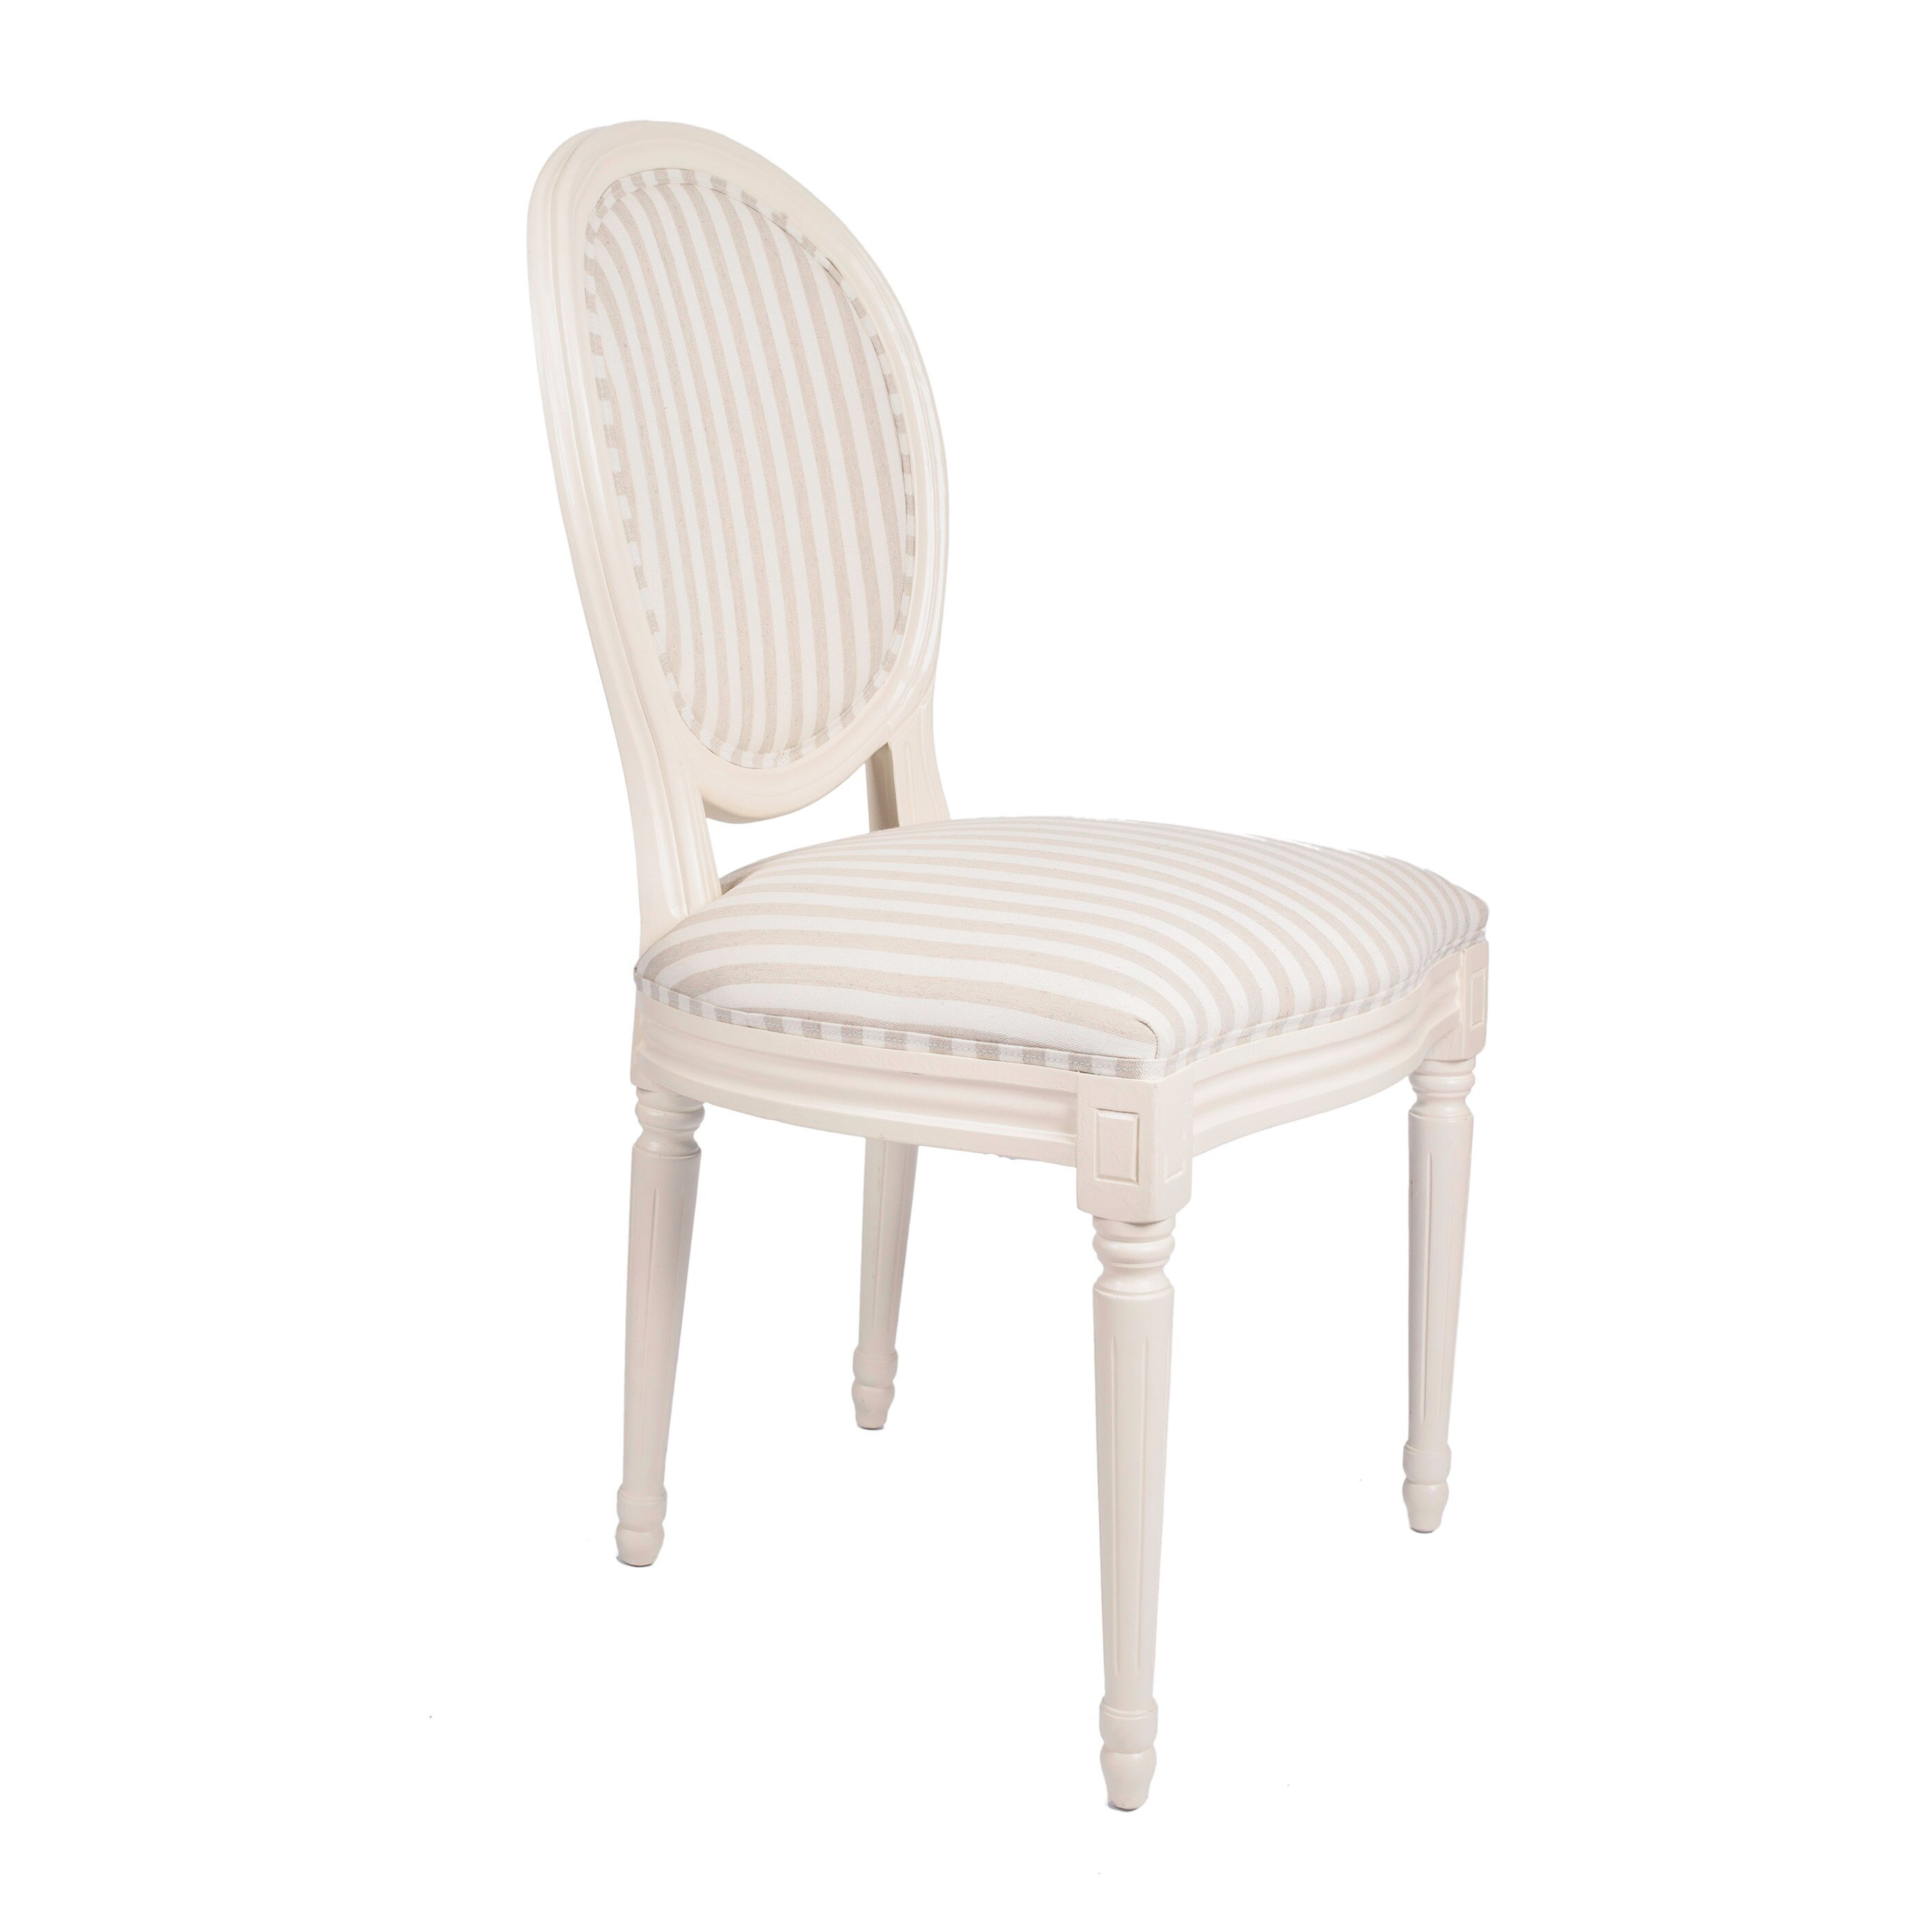 derry 39 s louis round back striped dining chair reviews wayfair uk. Black Bedroom Furniture Sets. Home Design Ideas